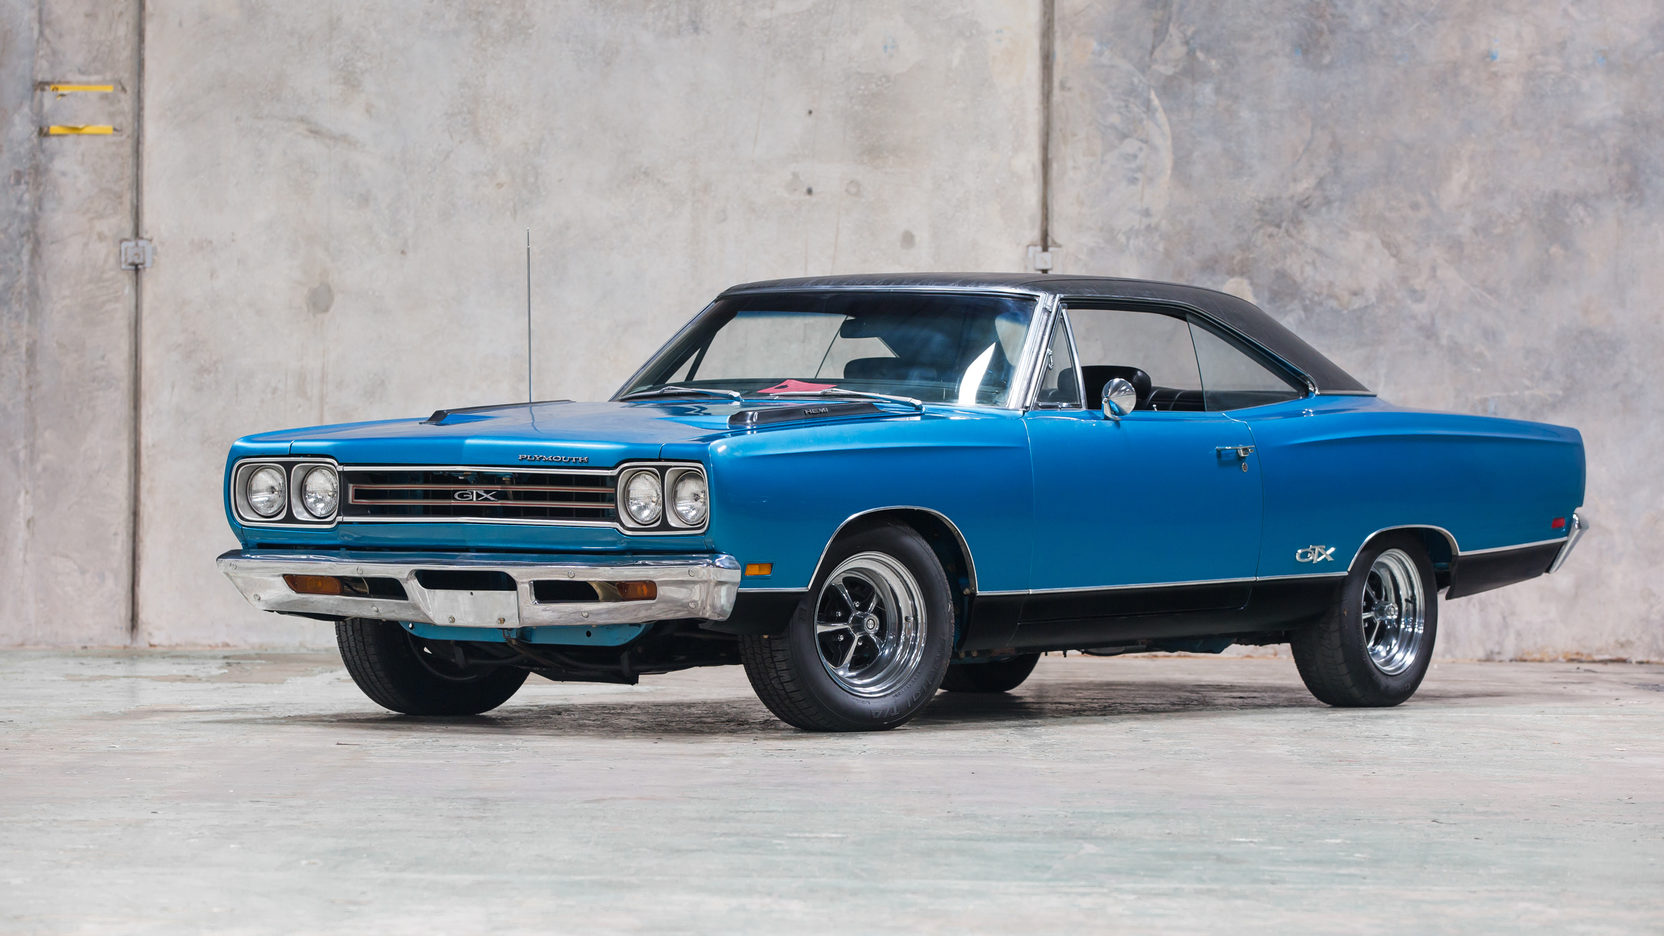 1969 Plymouth Hemi Gtx To Be Auctioned At Mecum Houston In